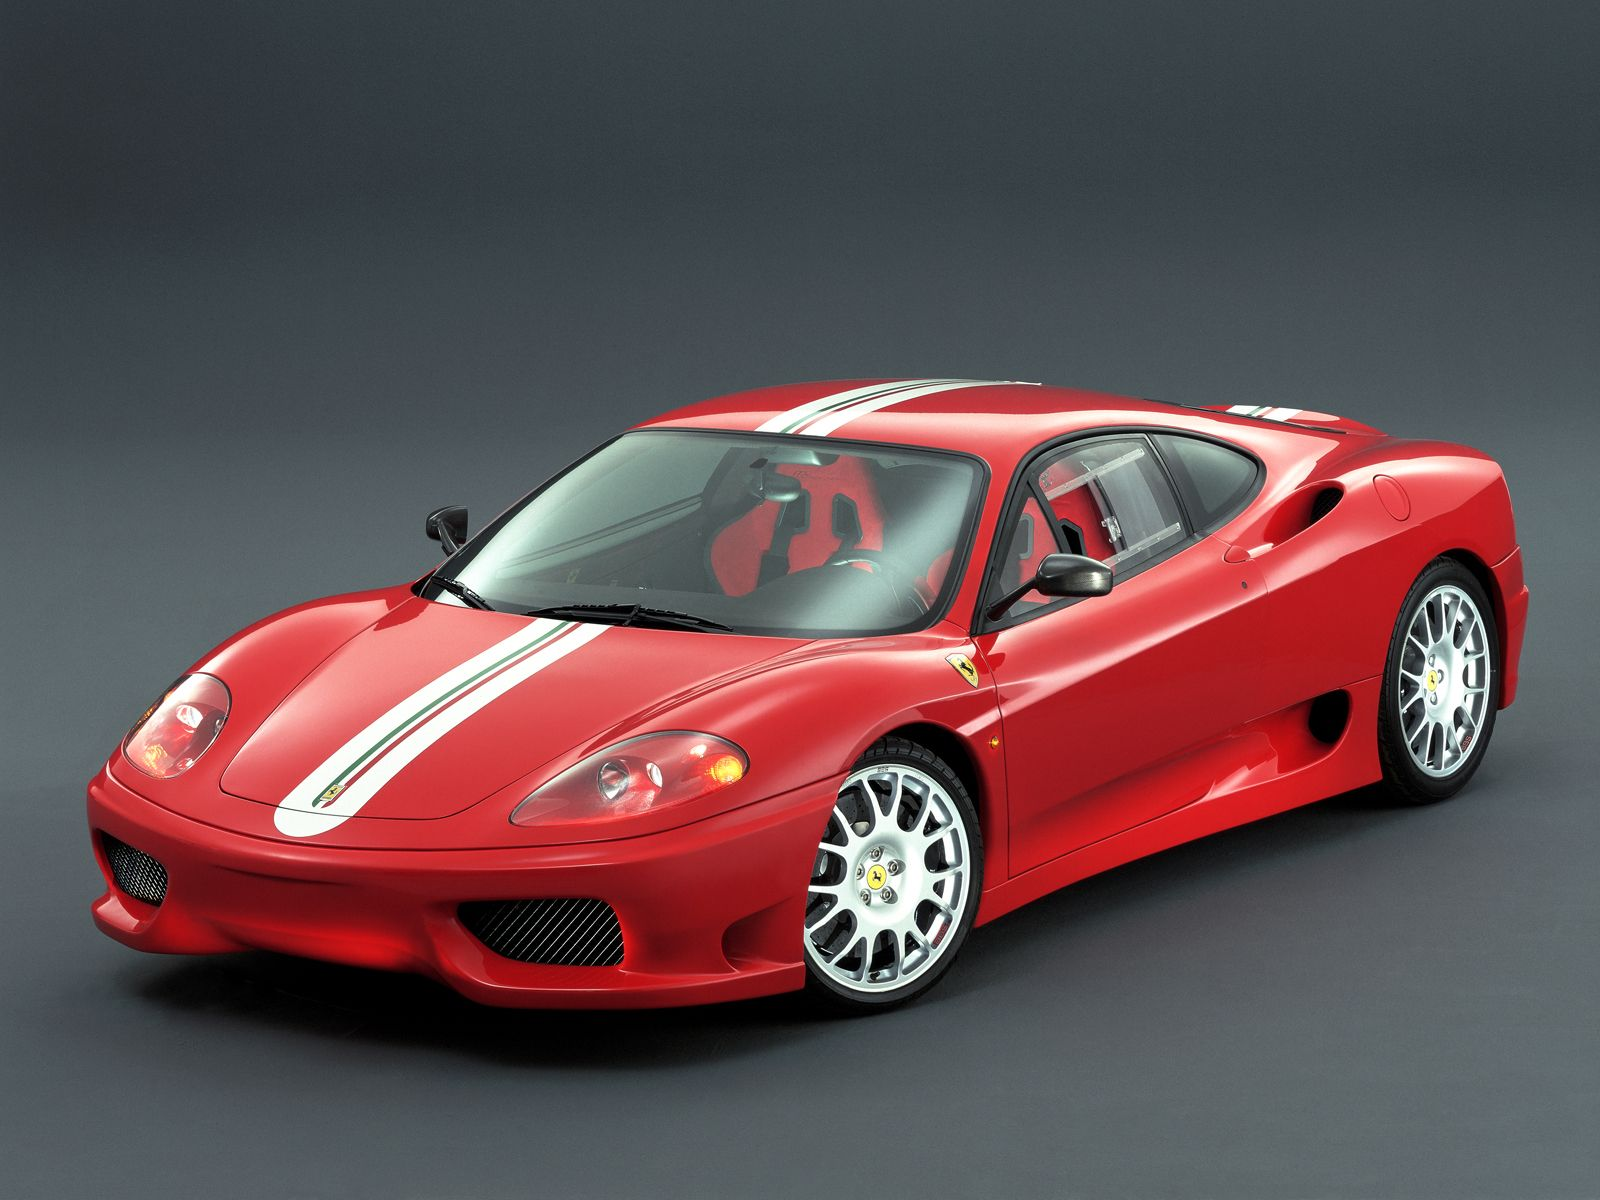 Our list of sexy cars includes the Ferrari 360 Modena